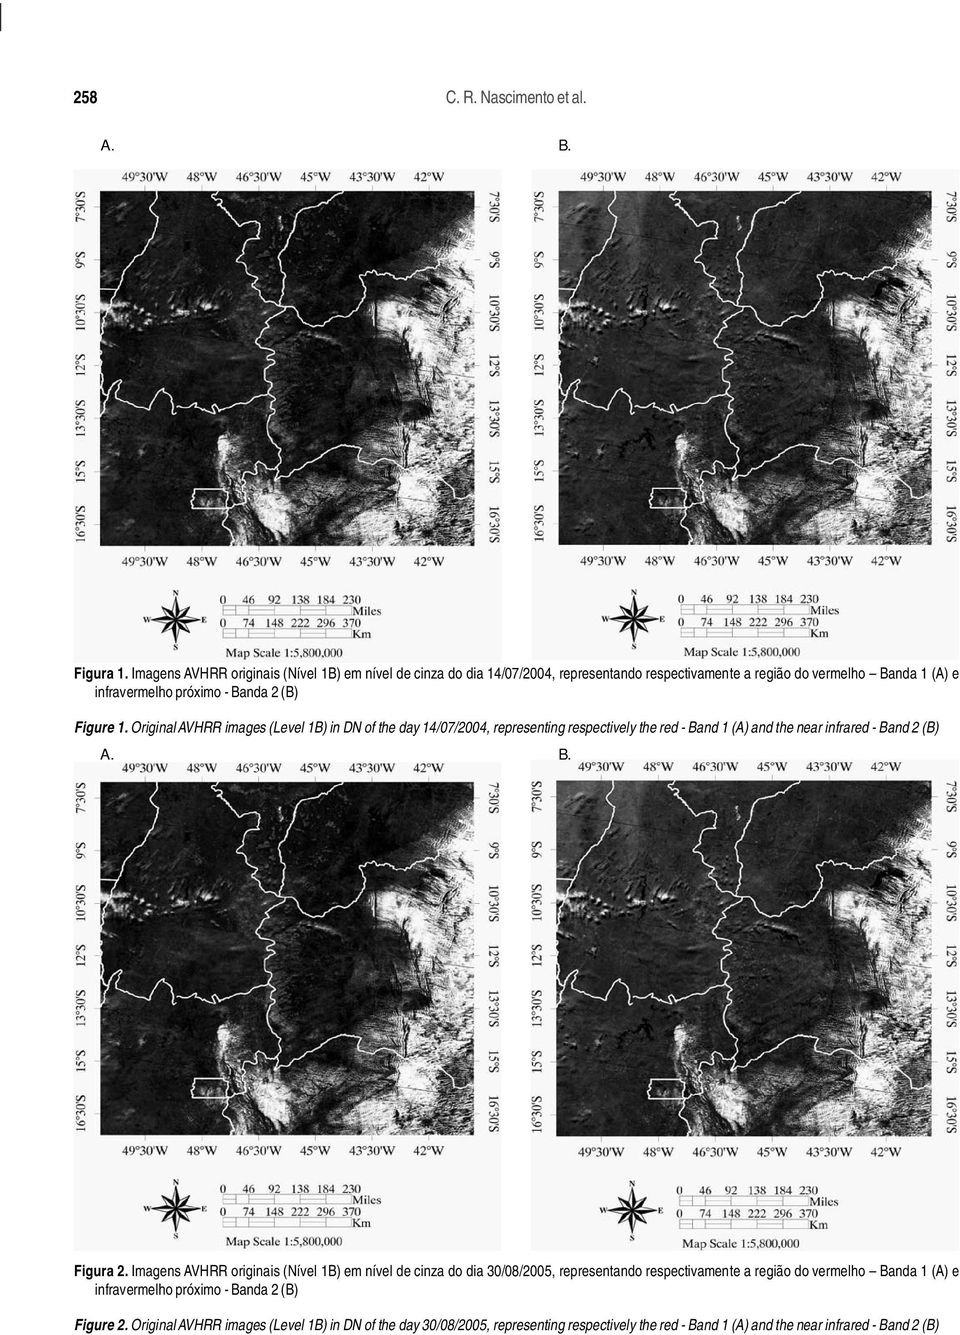 Figure. Original AVHRR images (Level B) in DN of the day 4/07/2004, representing respectively the red - Band (A) and the near infrared - Band 2 (B) A. B. Figura 2.